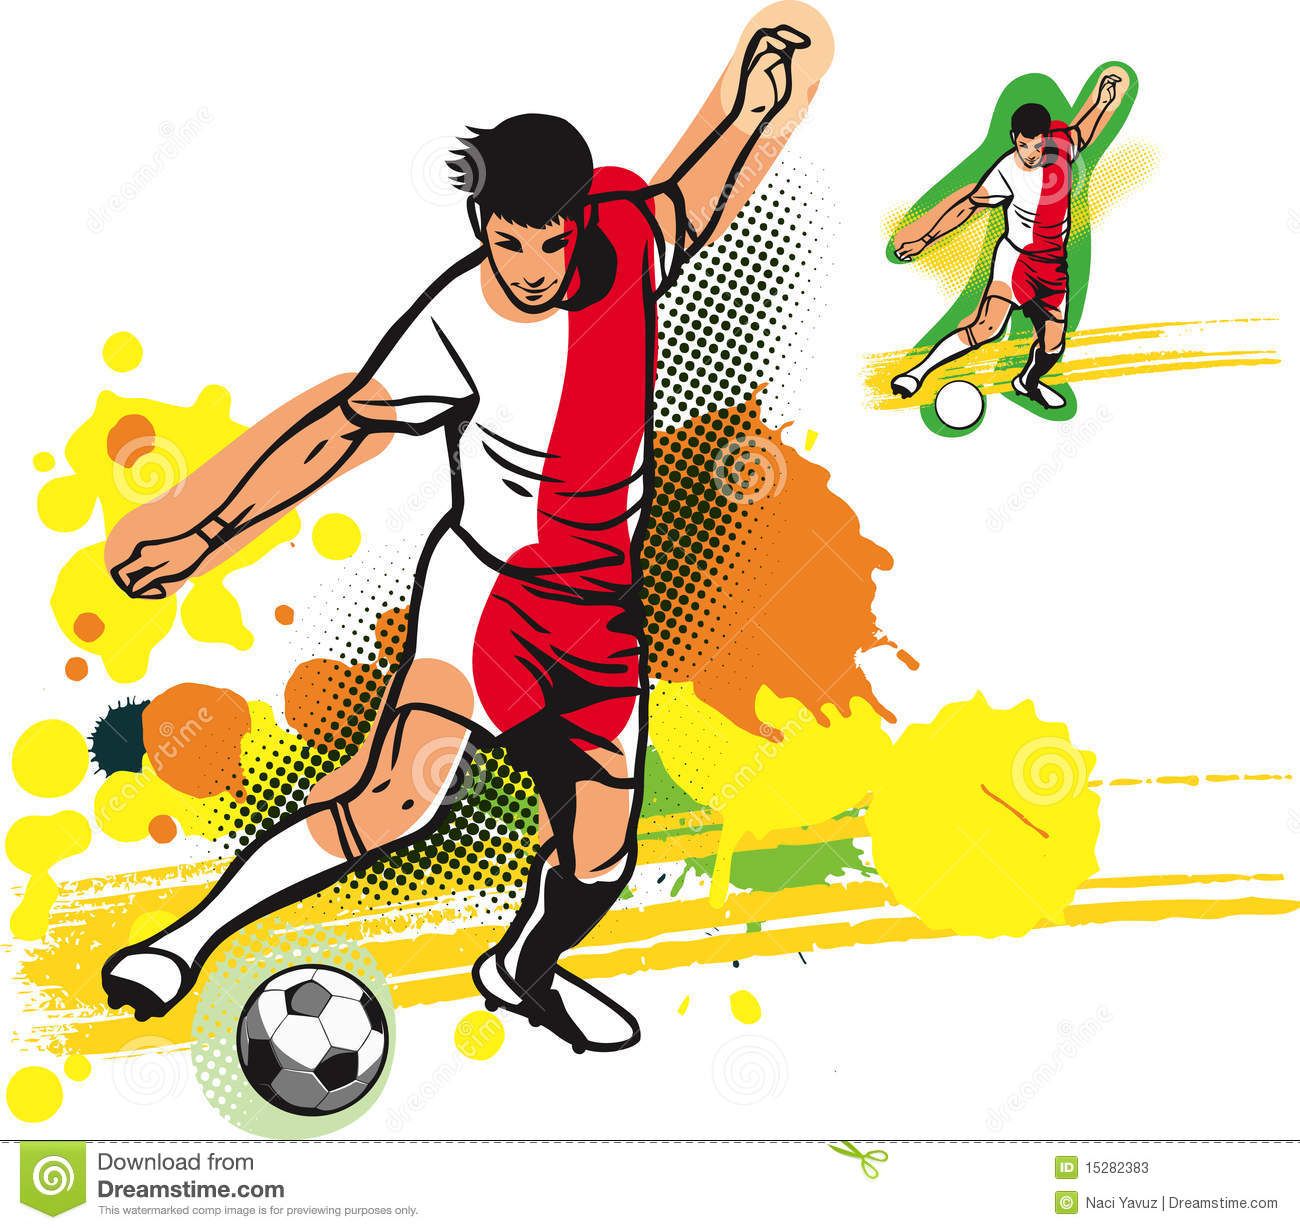 Soccer player graphics